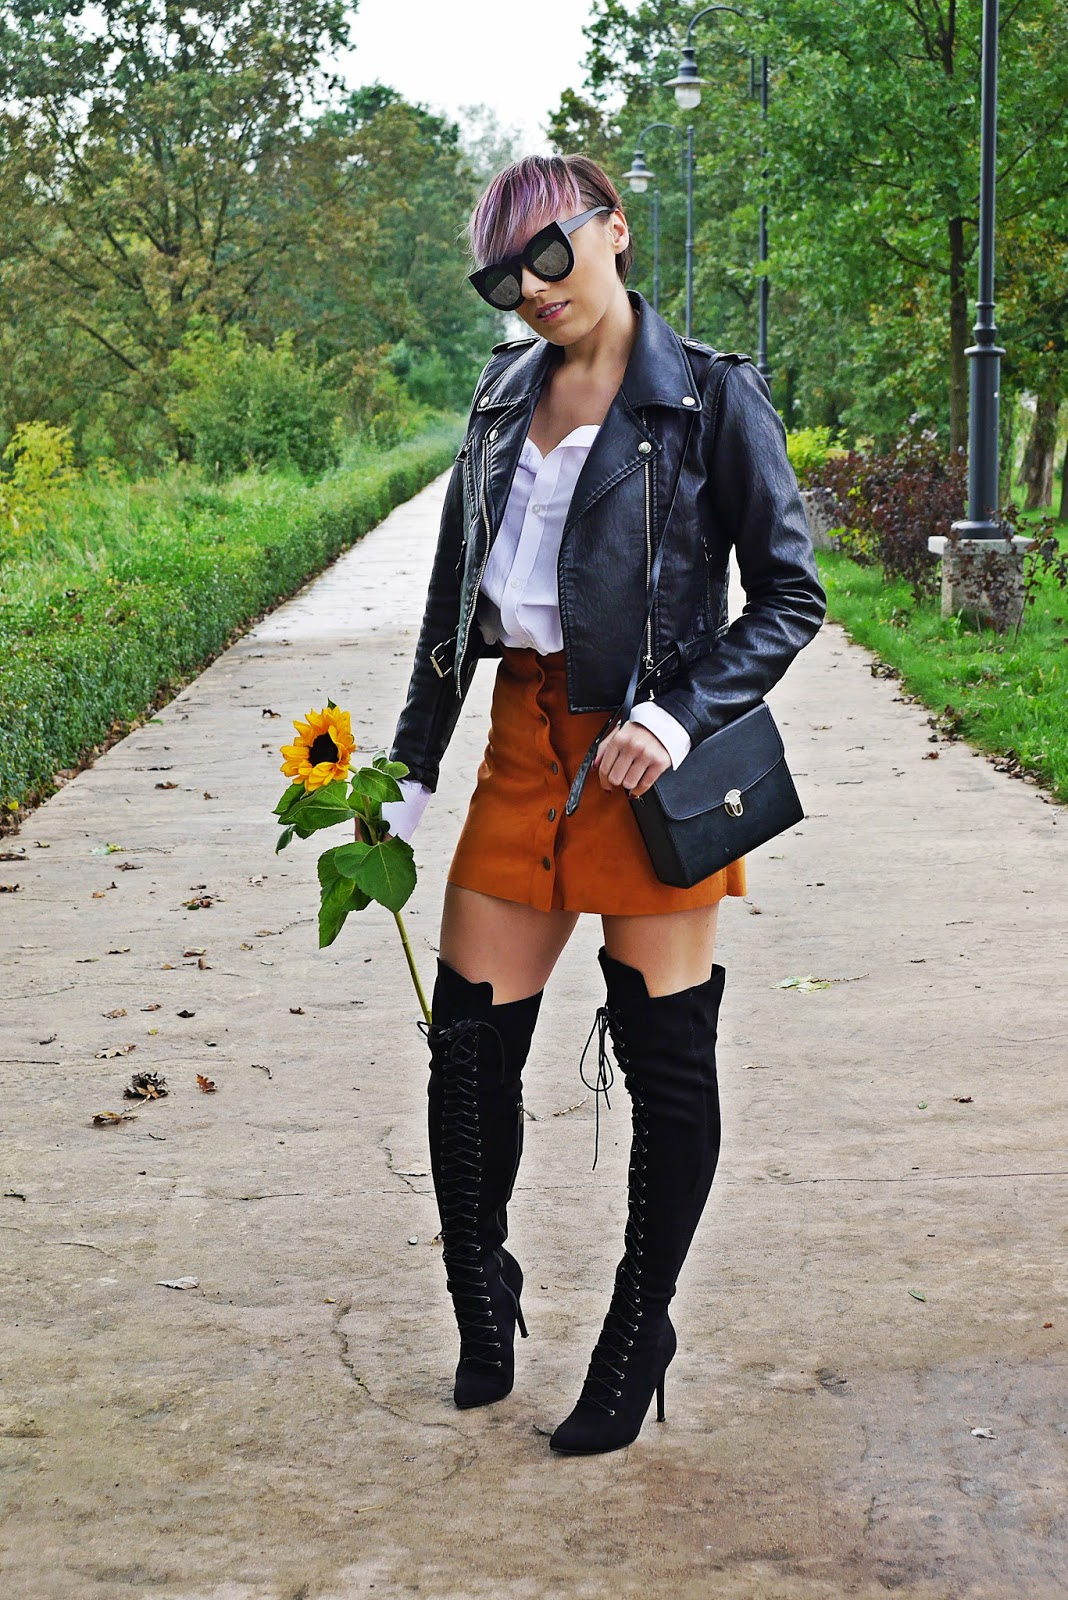 1_black_biker_jacket_zaful_white_shirt_purple_hair_karyn_blog_modowy_sunflower_260917a